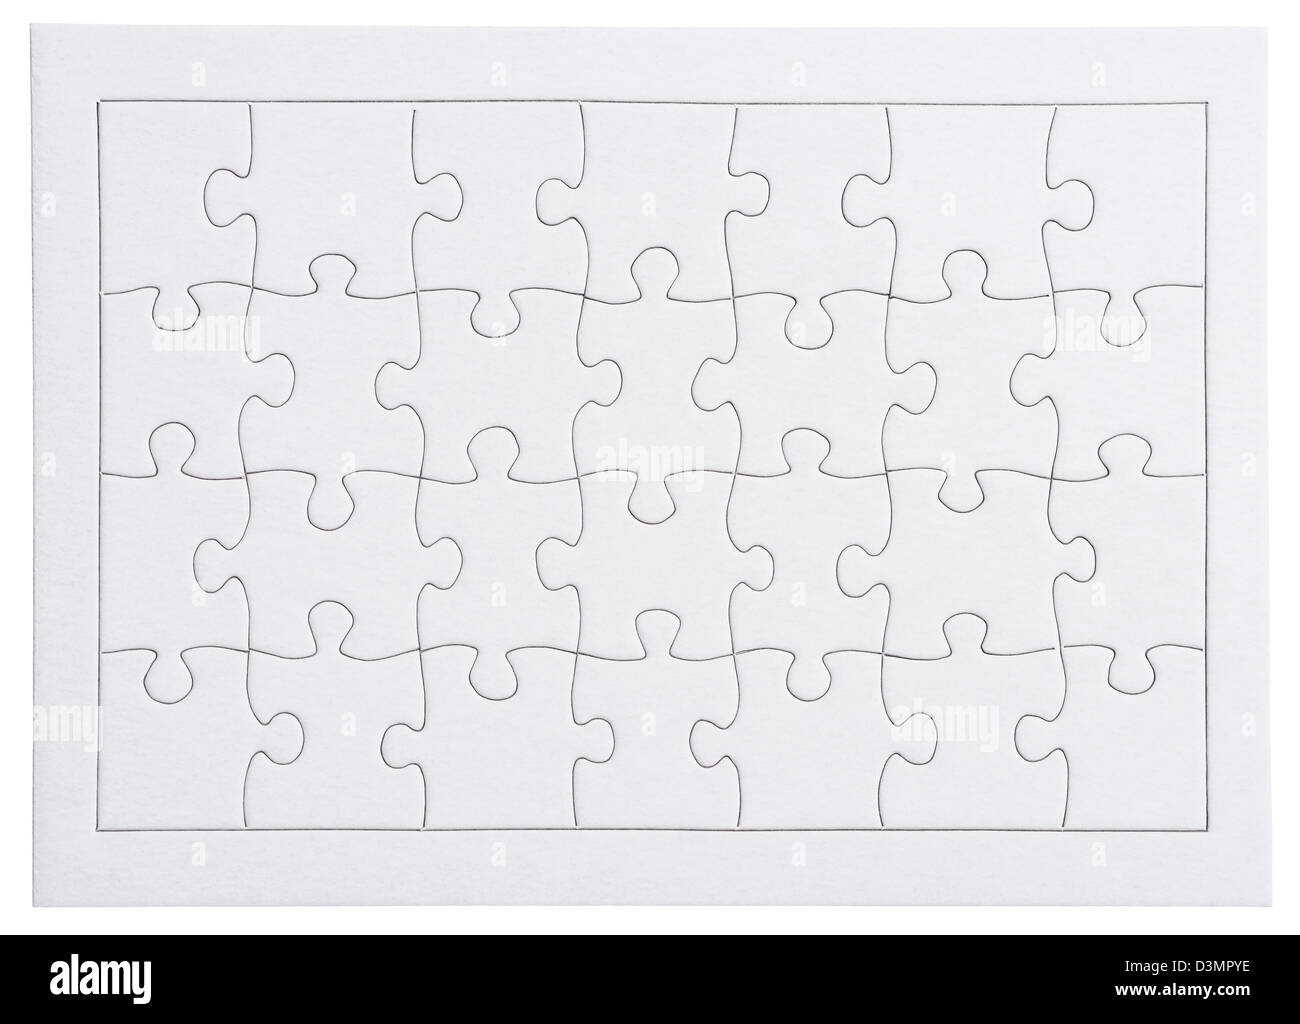 Black and white blank jigsaw outline - Stock Image